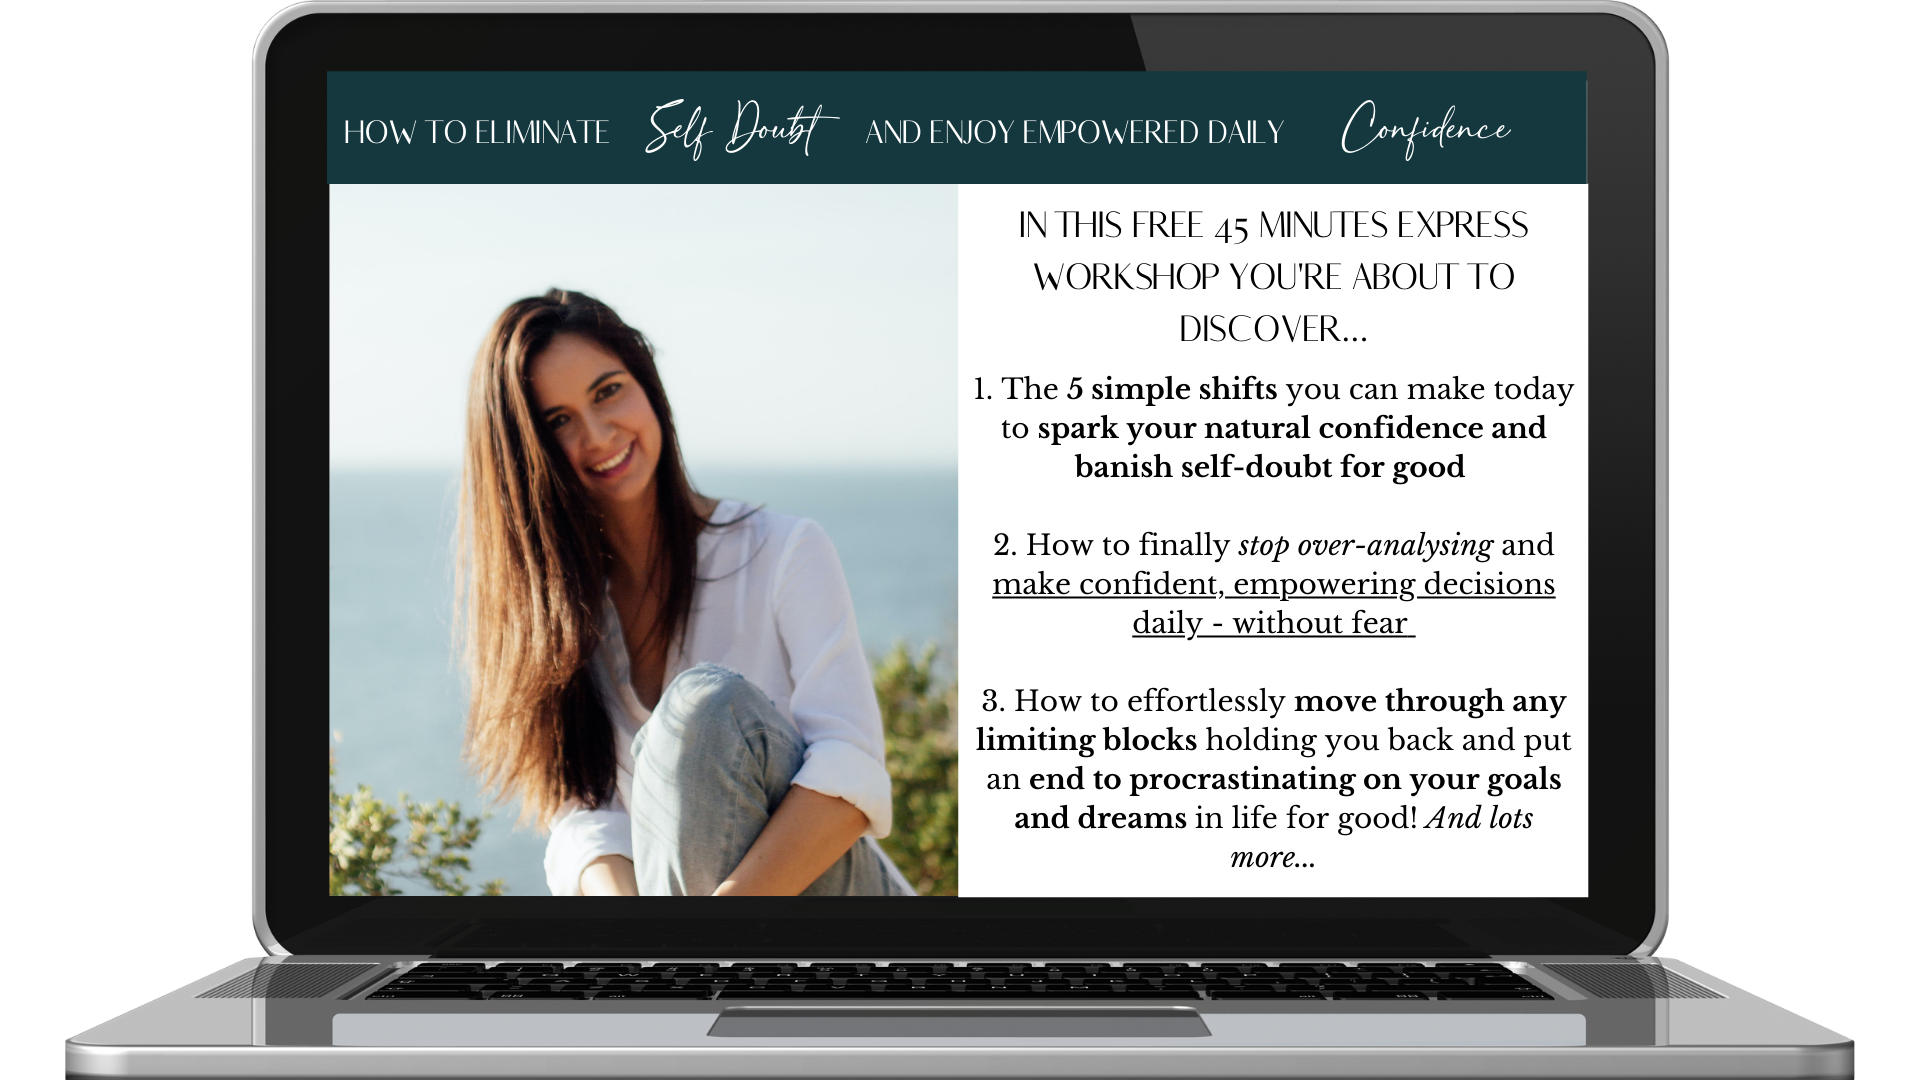 How To Eliminate Self Doubt And Enjoy Empowered Daily Confidence